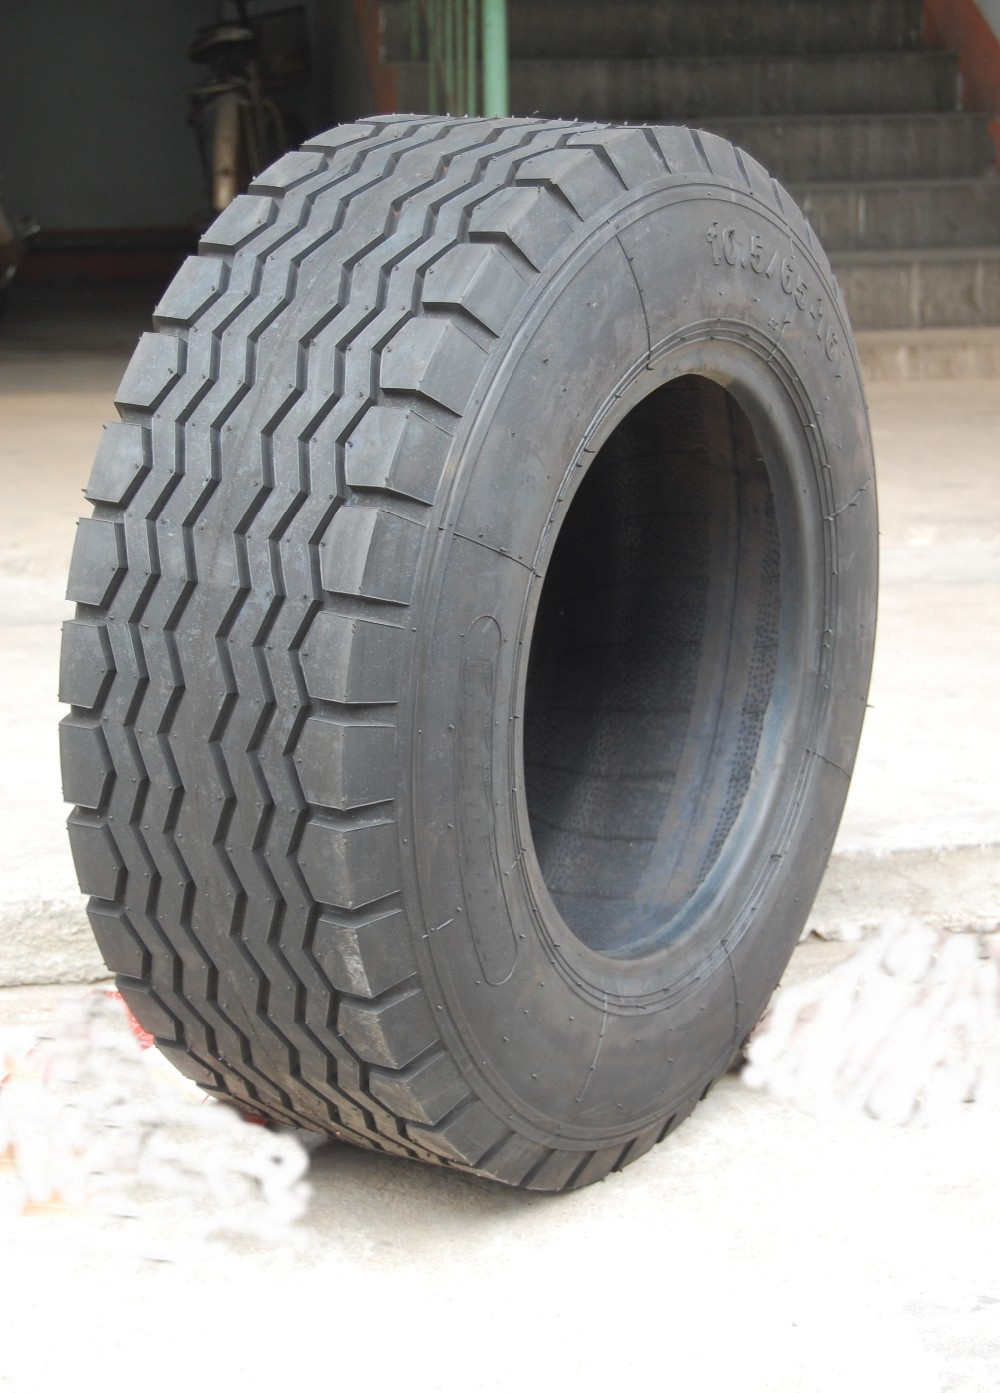 Ag Tires For Tractors : Agricultural tire tractor tires for tractors